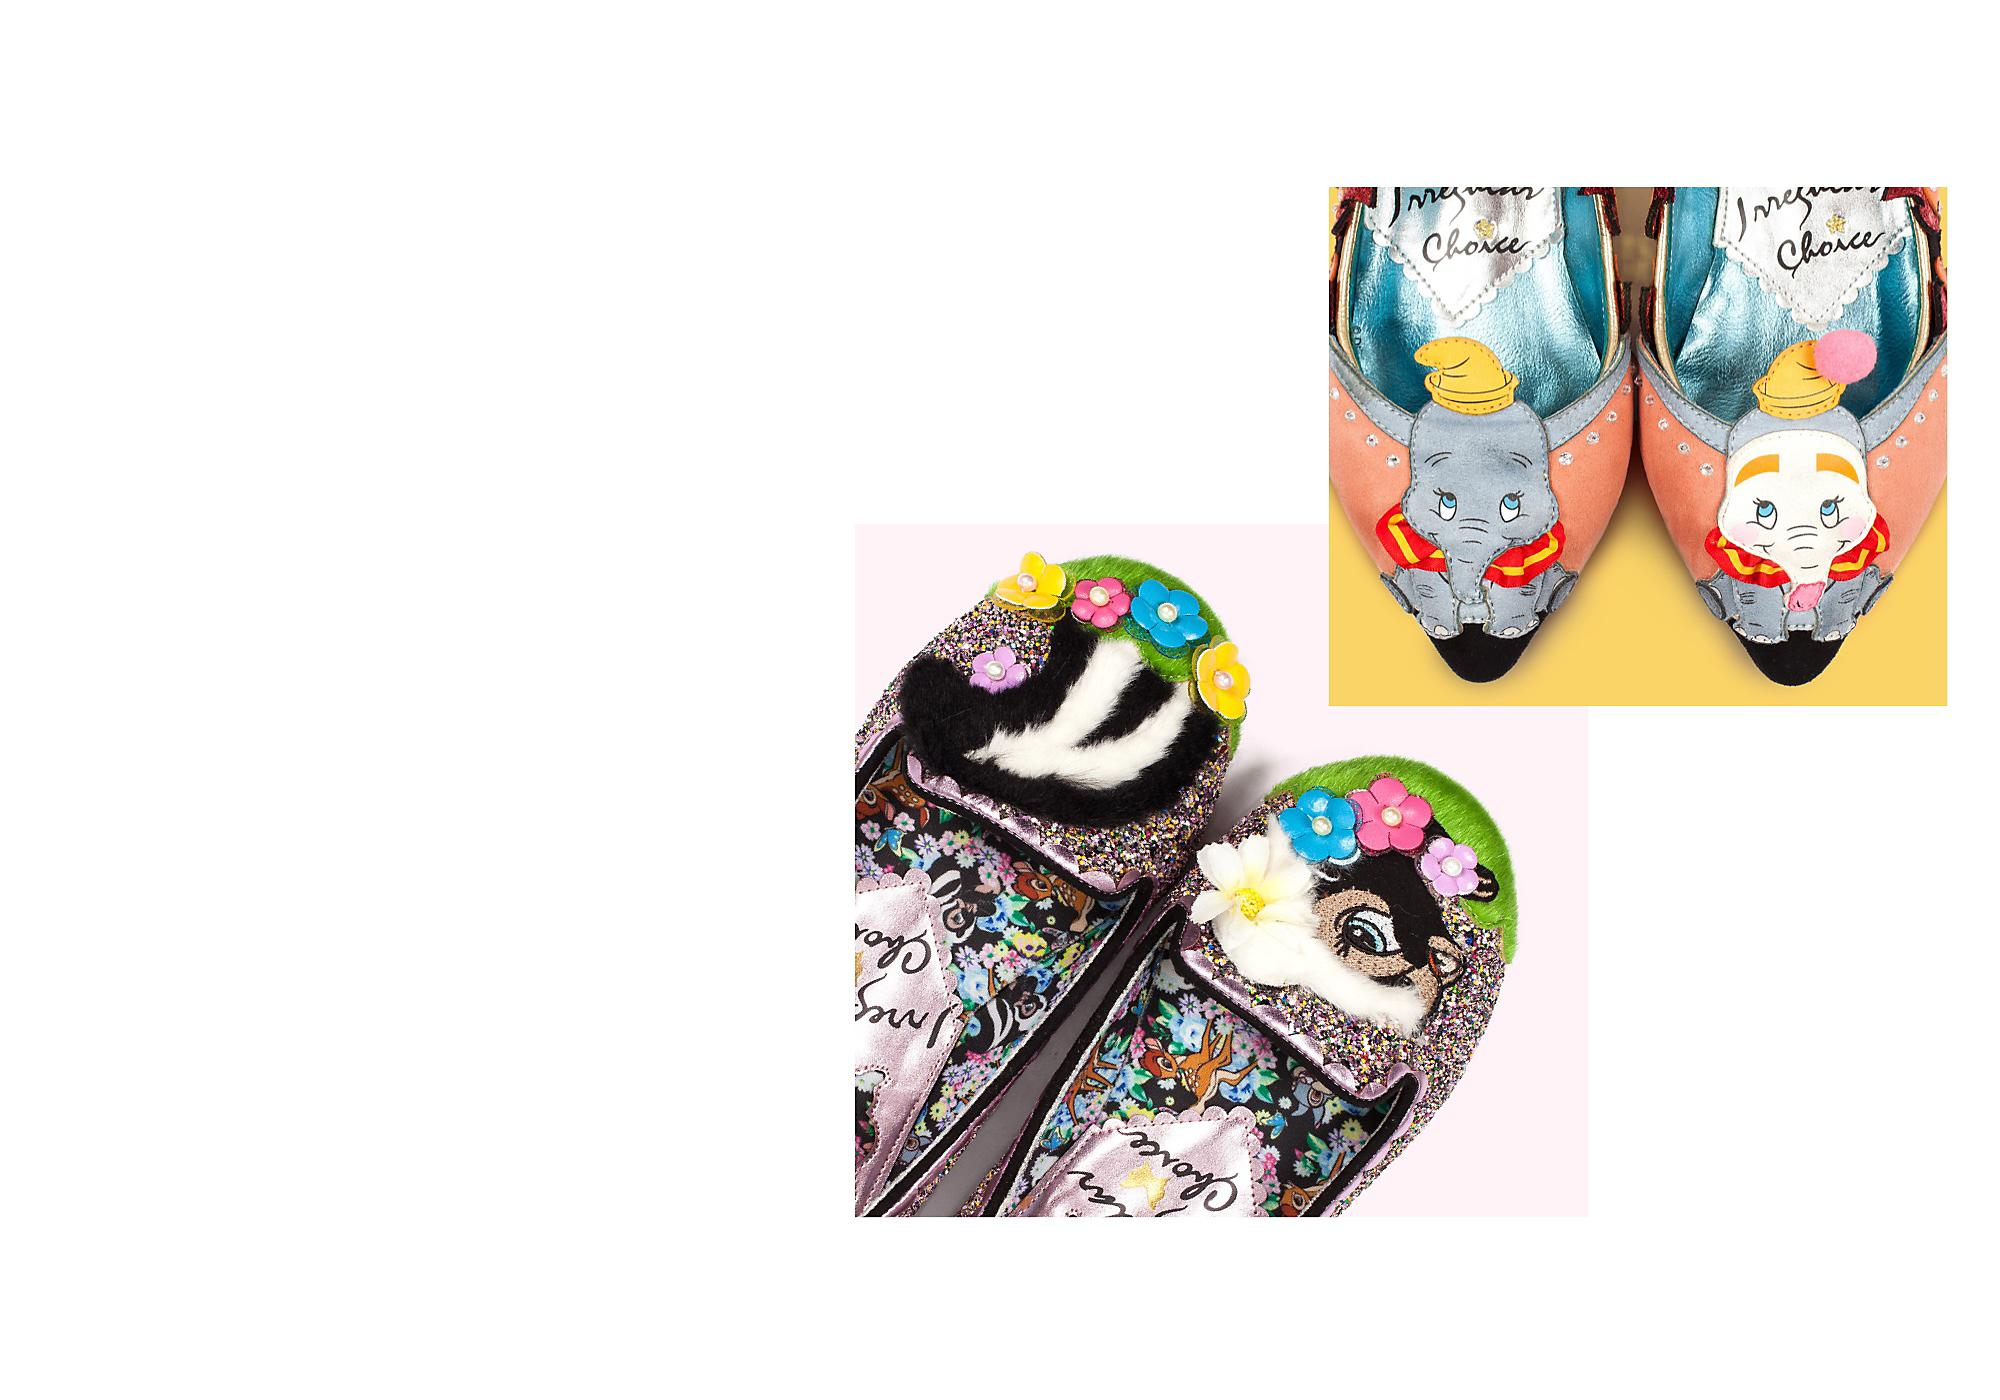 Every Shoe Tells a Story From embellished heels, to tiny intricate charms, to lavish fabrics and mesmerising colours, everyone has a Disney and Irregular Choice favourite shoe or story.